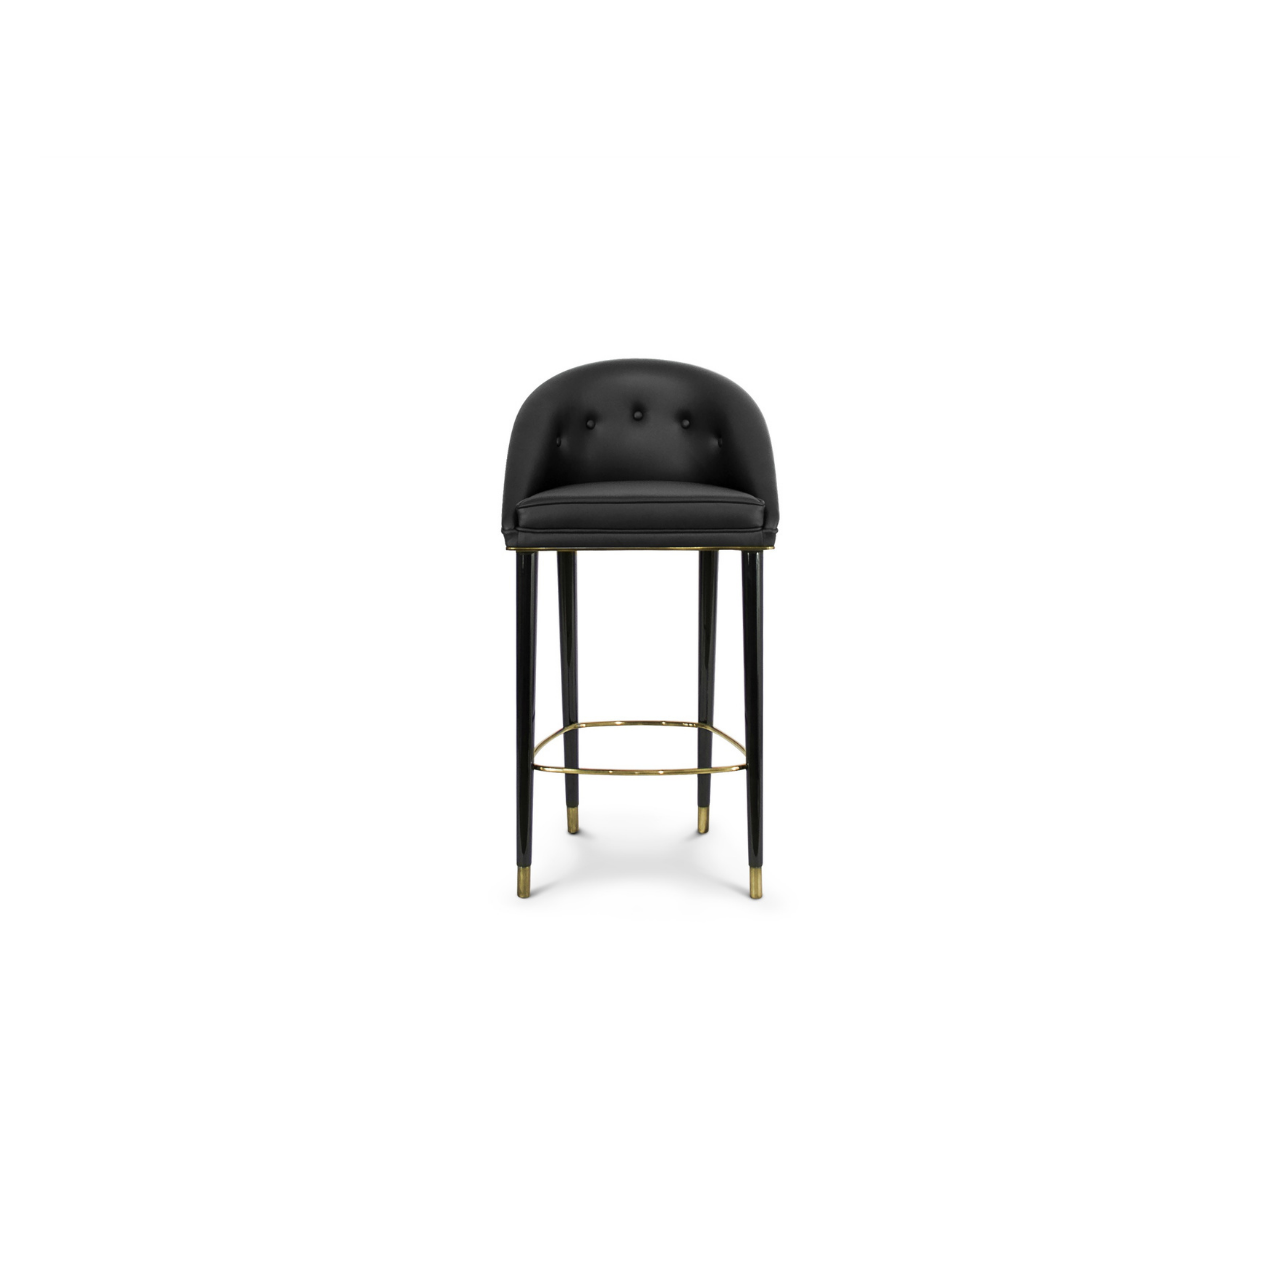 MALAY BAR CHAIR